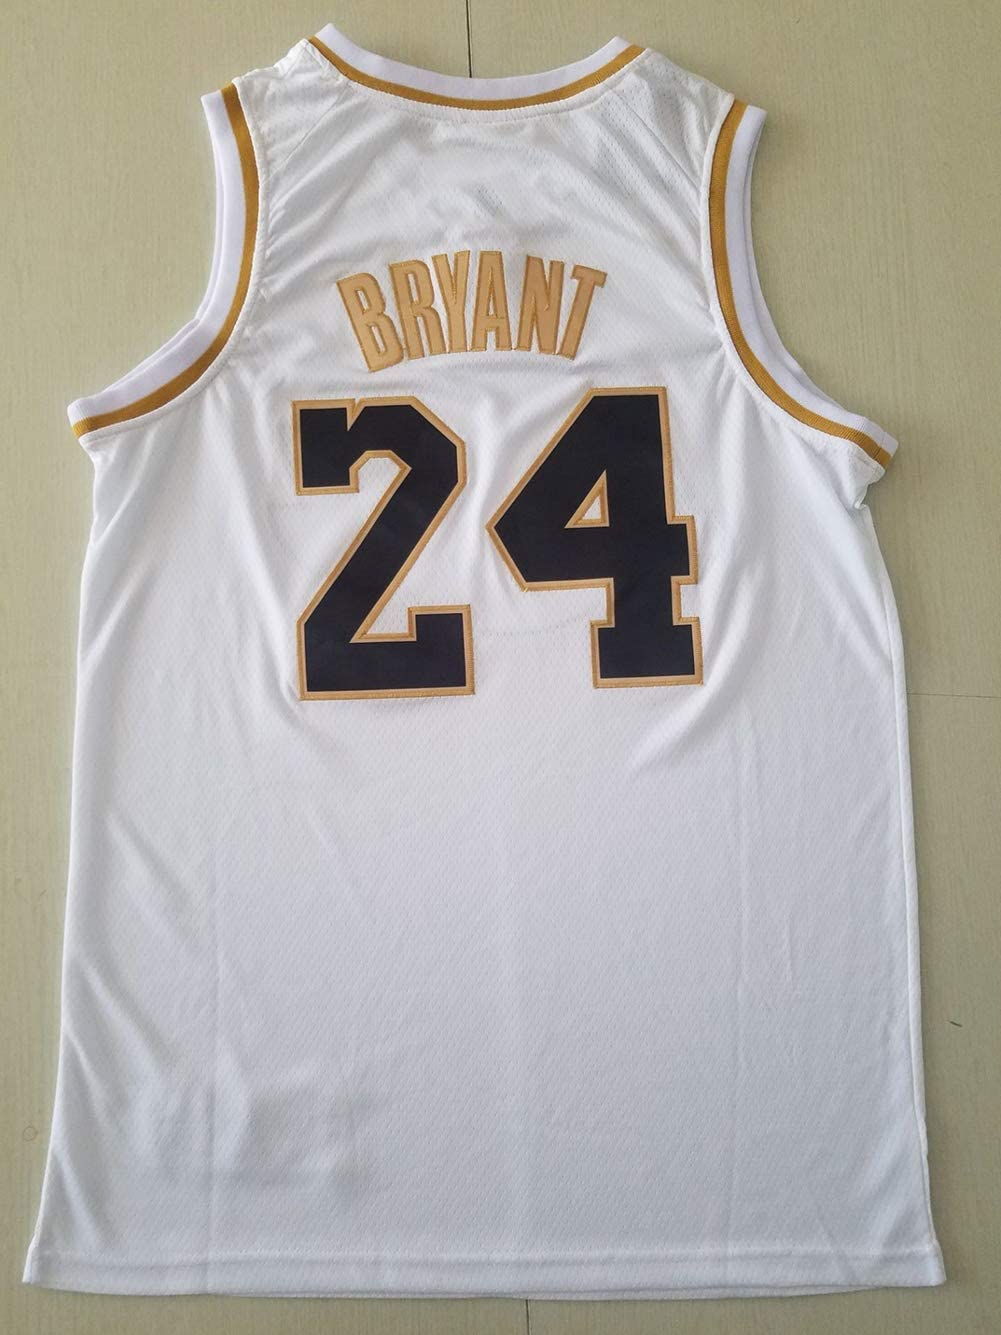 24 Los Angeles Lakers Maillots d/ét/é Basketball Uniforme Broderie Tops Basketball Suit Jerseys Jersey Or Noir DCE Homme Maillot Kobe Bryant NO